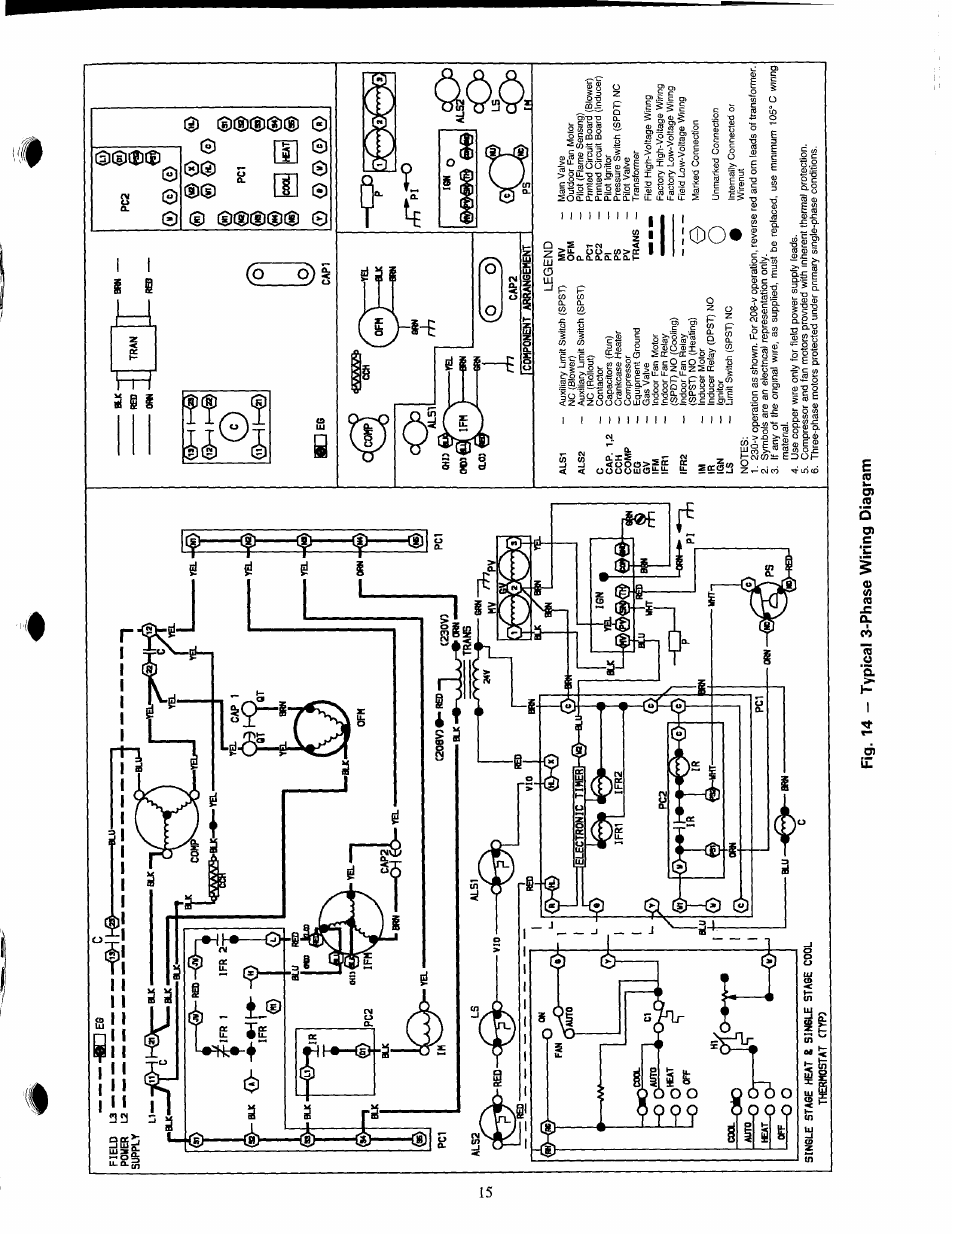 carrier 48nlt page15 wiring diagram carrier air handler the wiring diagram  at reclaimingppi.co